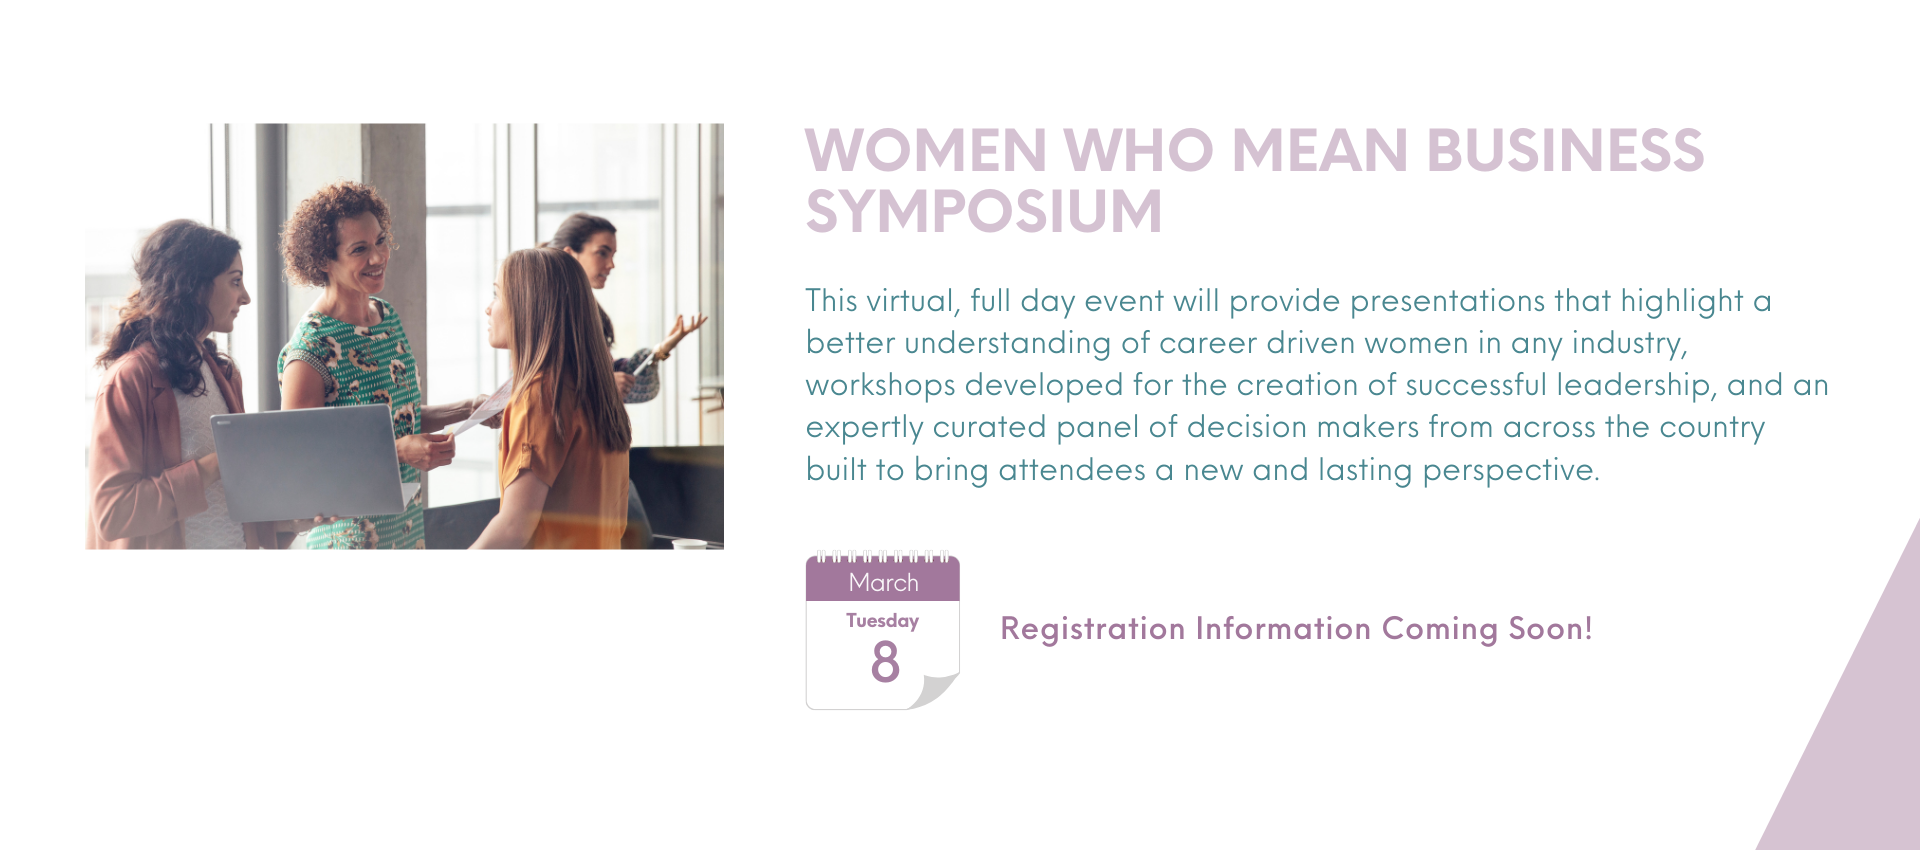 Registration Information Coming Soon! Women Who Mean Business Symposium This virtual, full day event will provide presentations that highlight a better understanding of career driven women in any industry, workshops developed for the creation of successful leadership, and an expertly curated panel of decision makers from across the country built to bring attendees a new and lasting perspective.